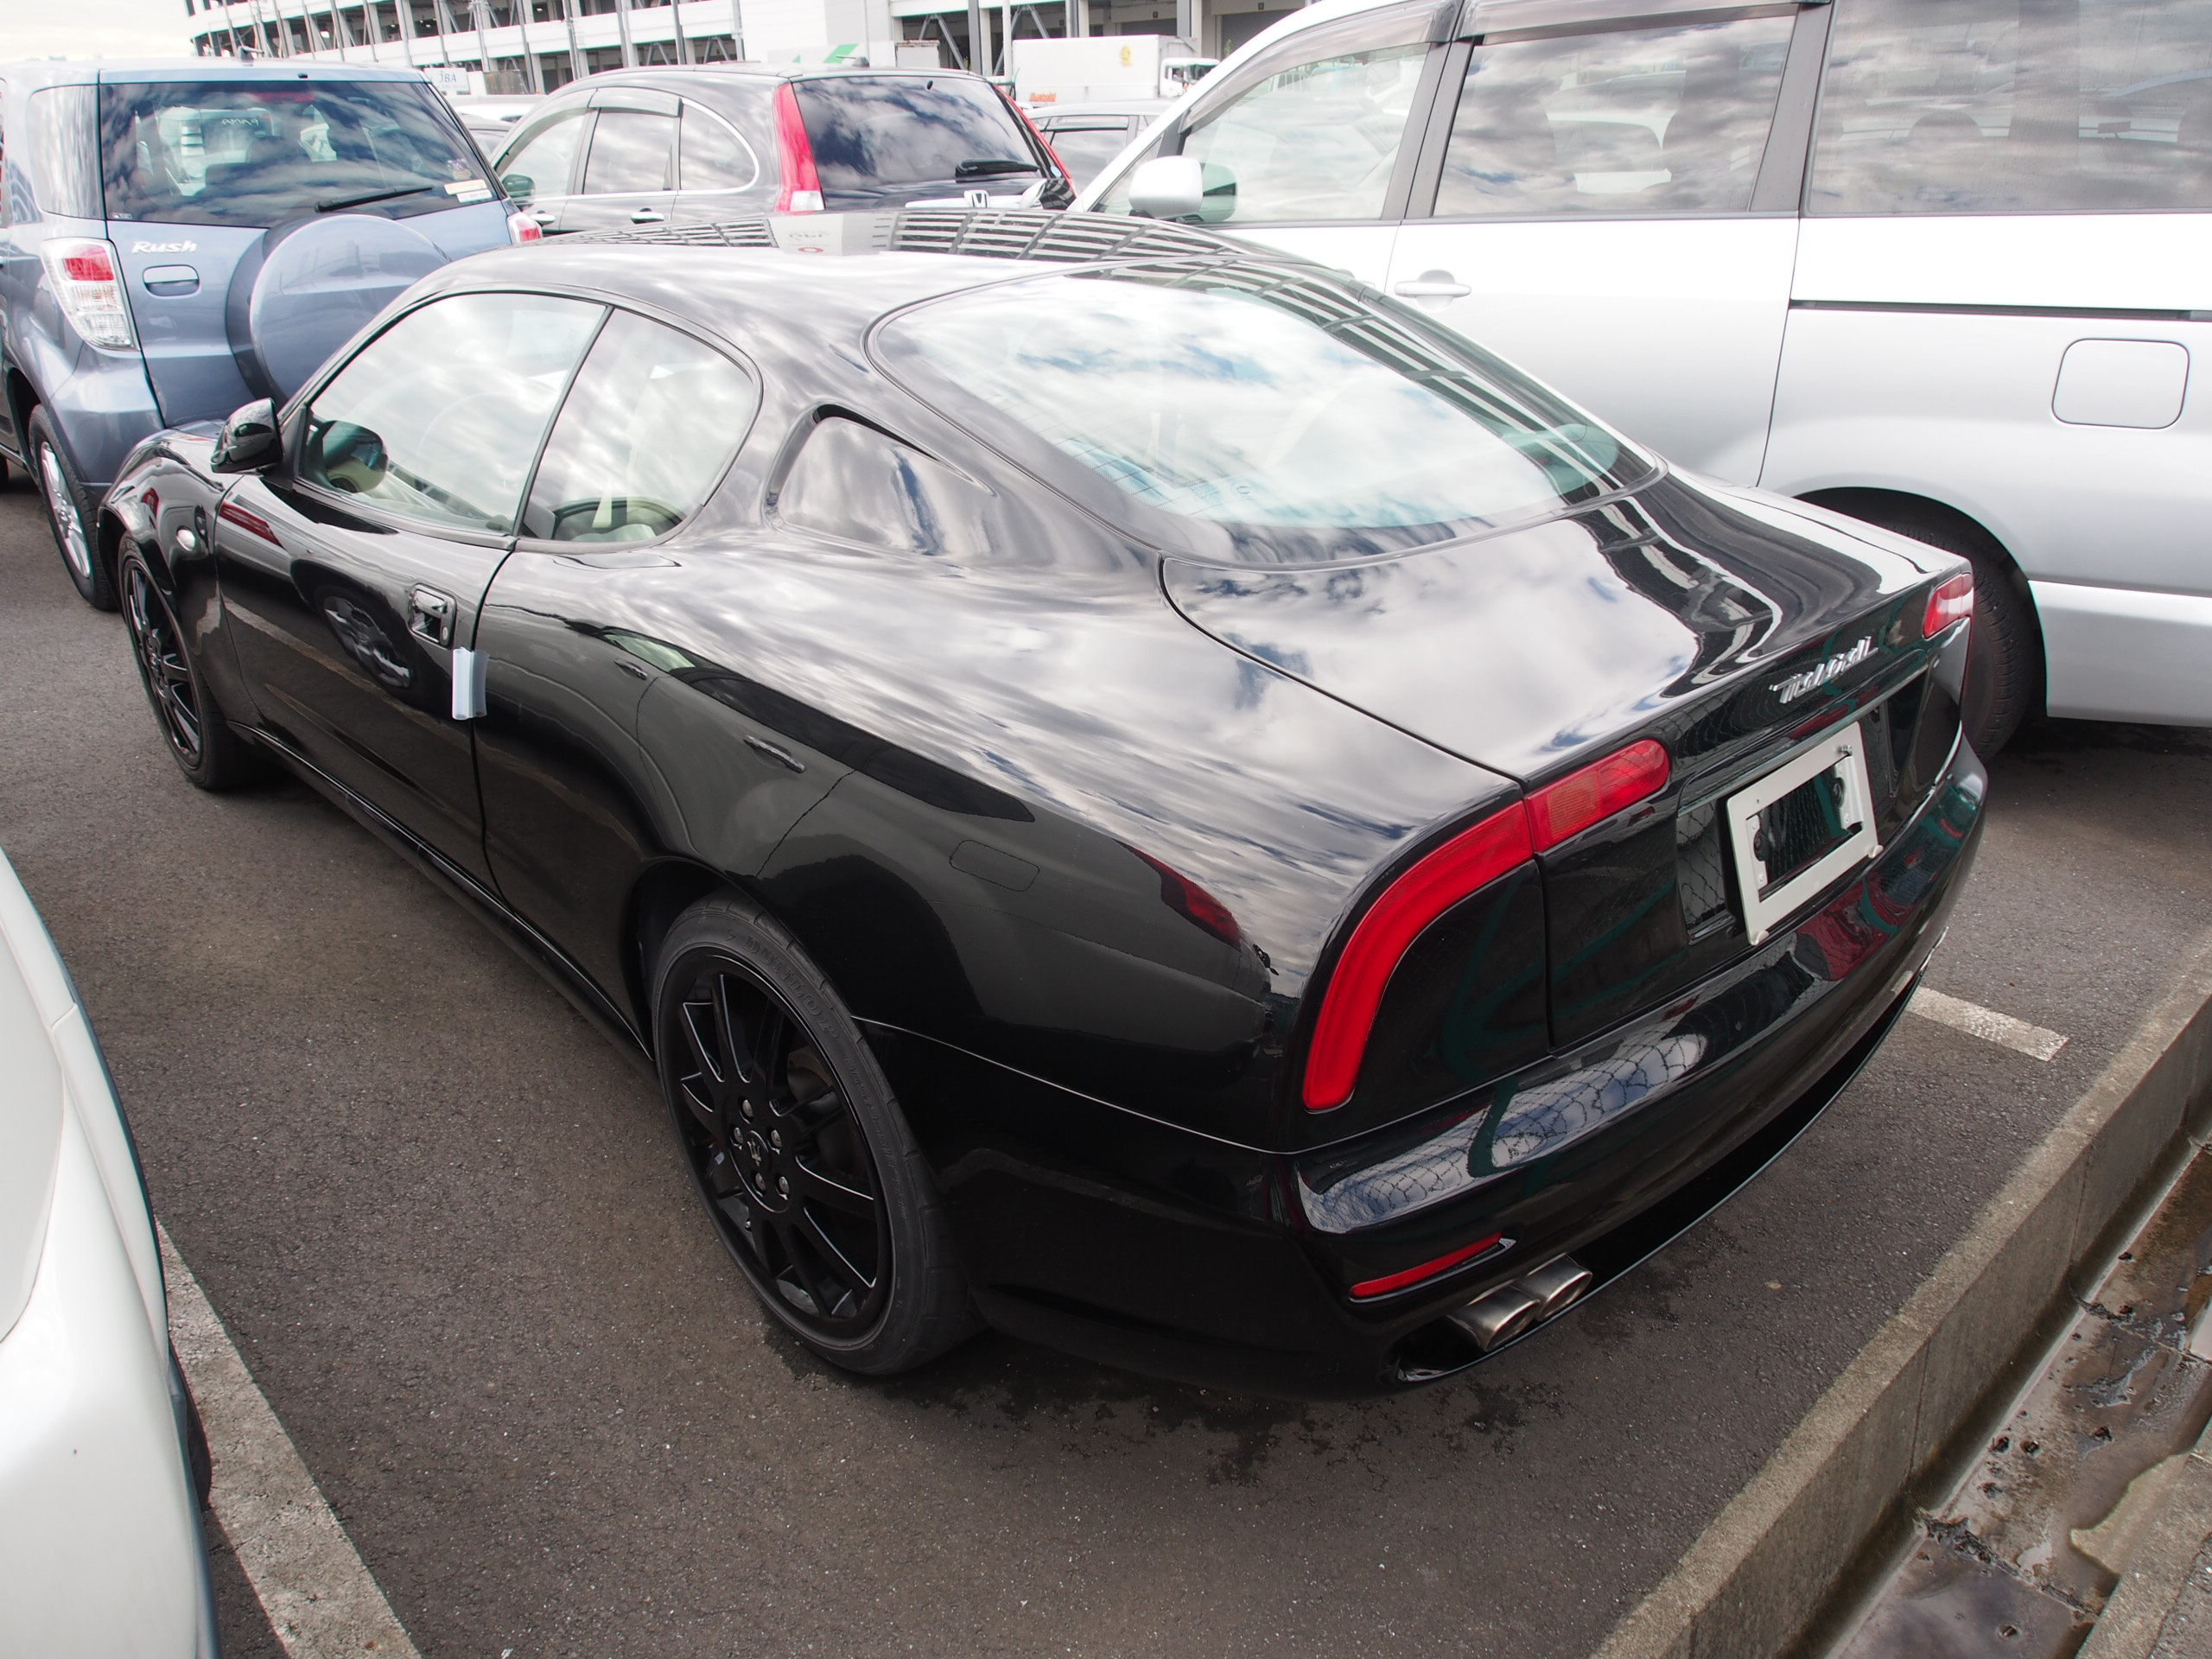 maserati3200gtnoire_port_japon2